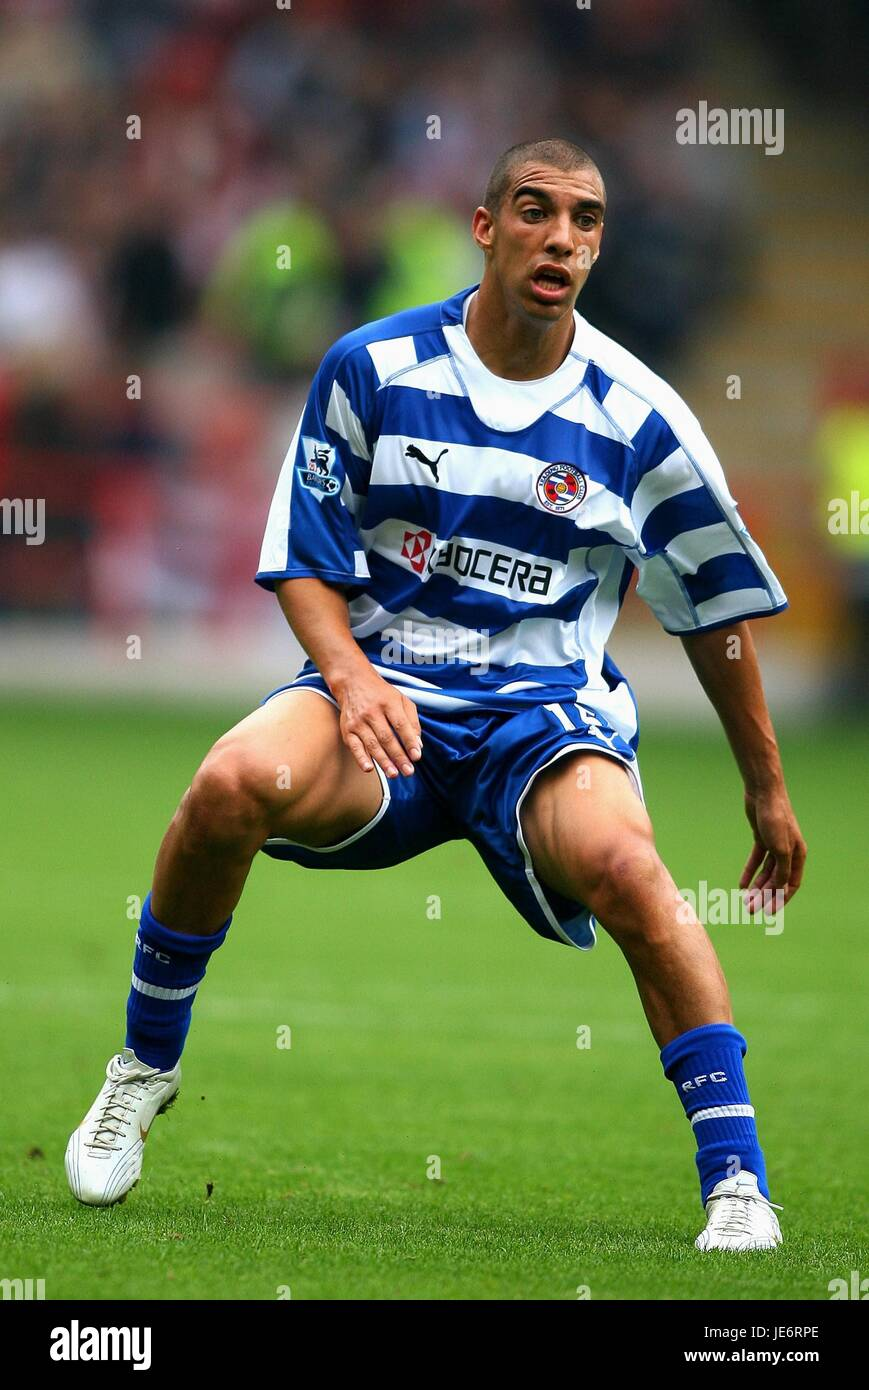 JAMES HARPER READING FC BRAMALL LANE SHEFFIELD ENGLAND 16 September 2006 - Stock Image